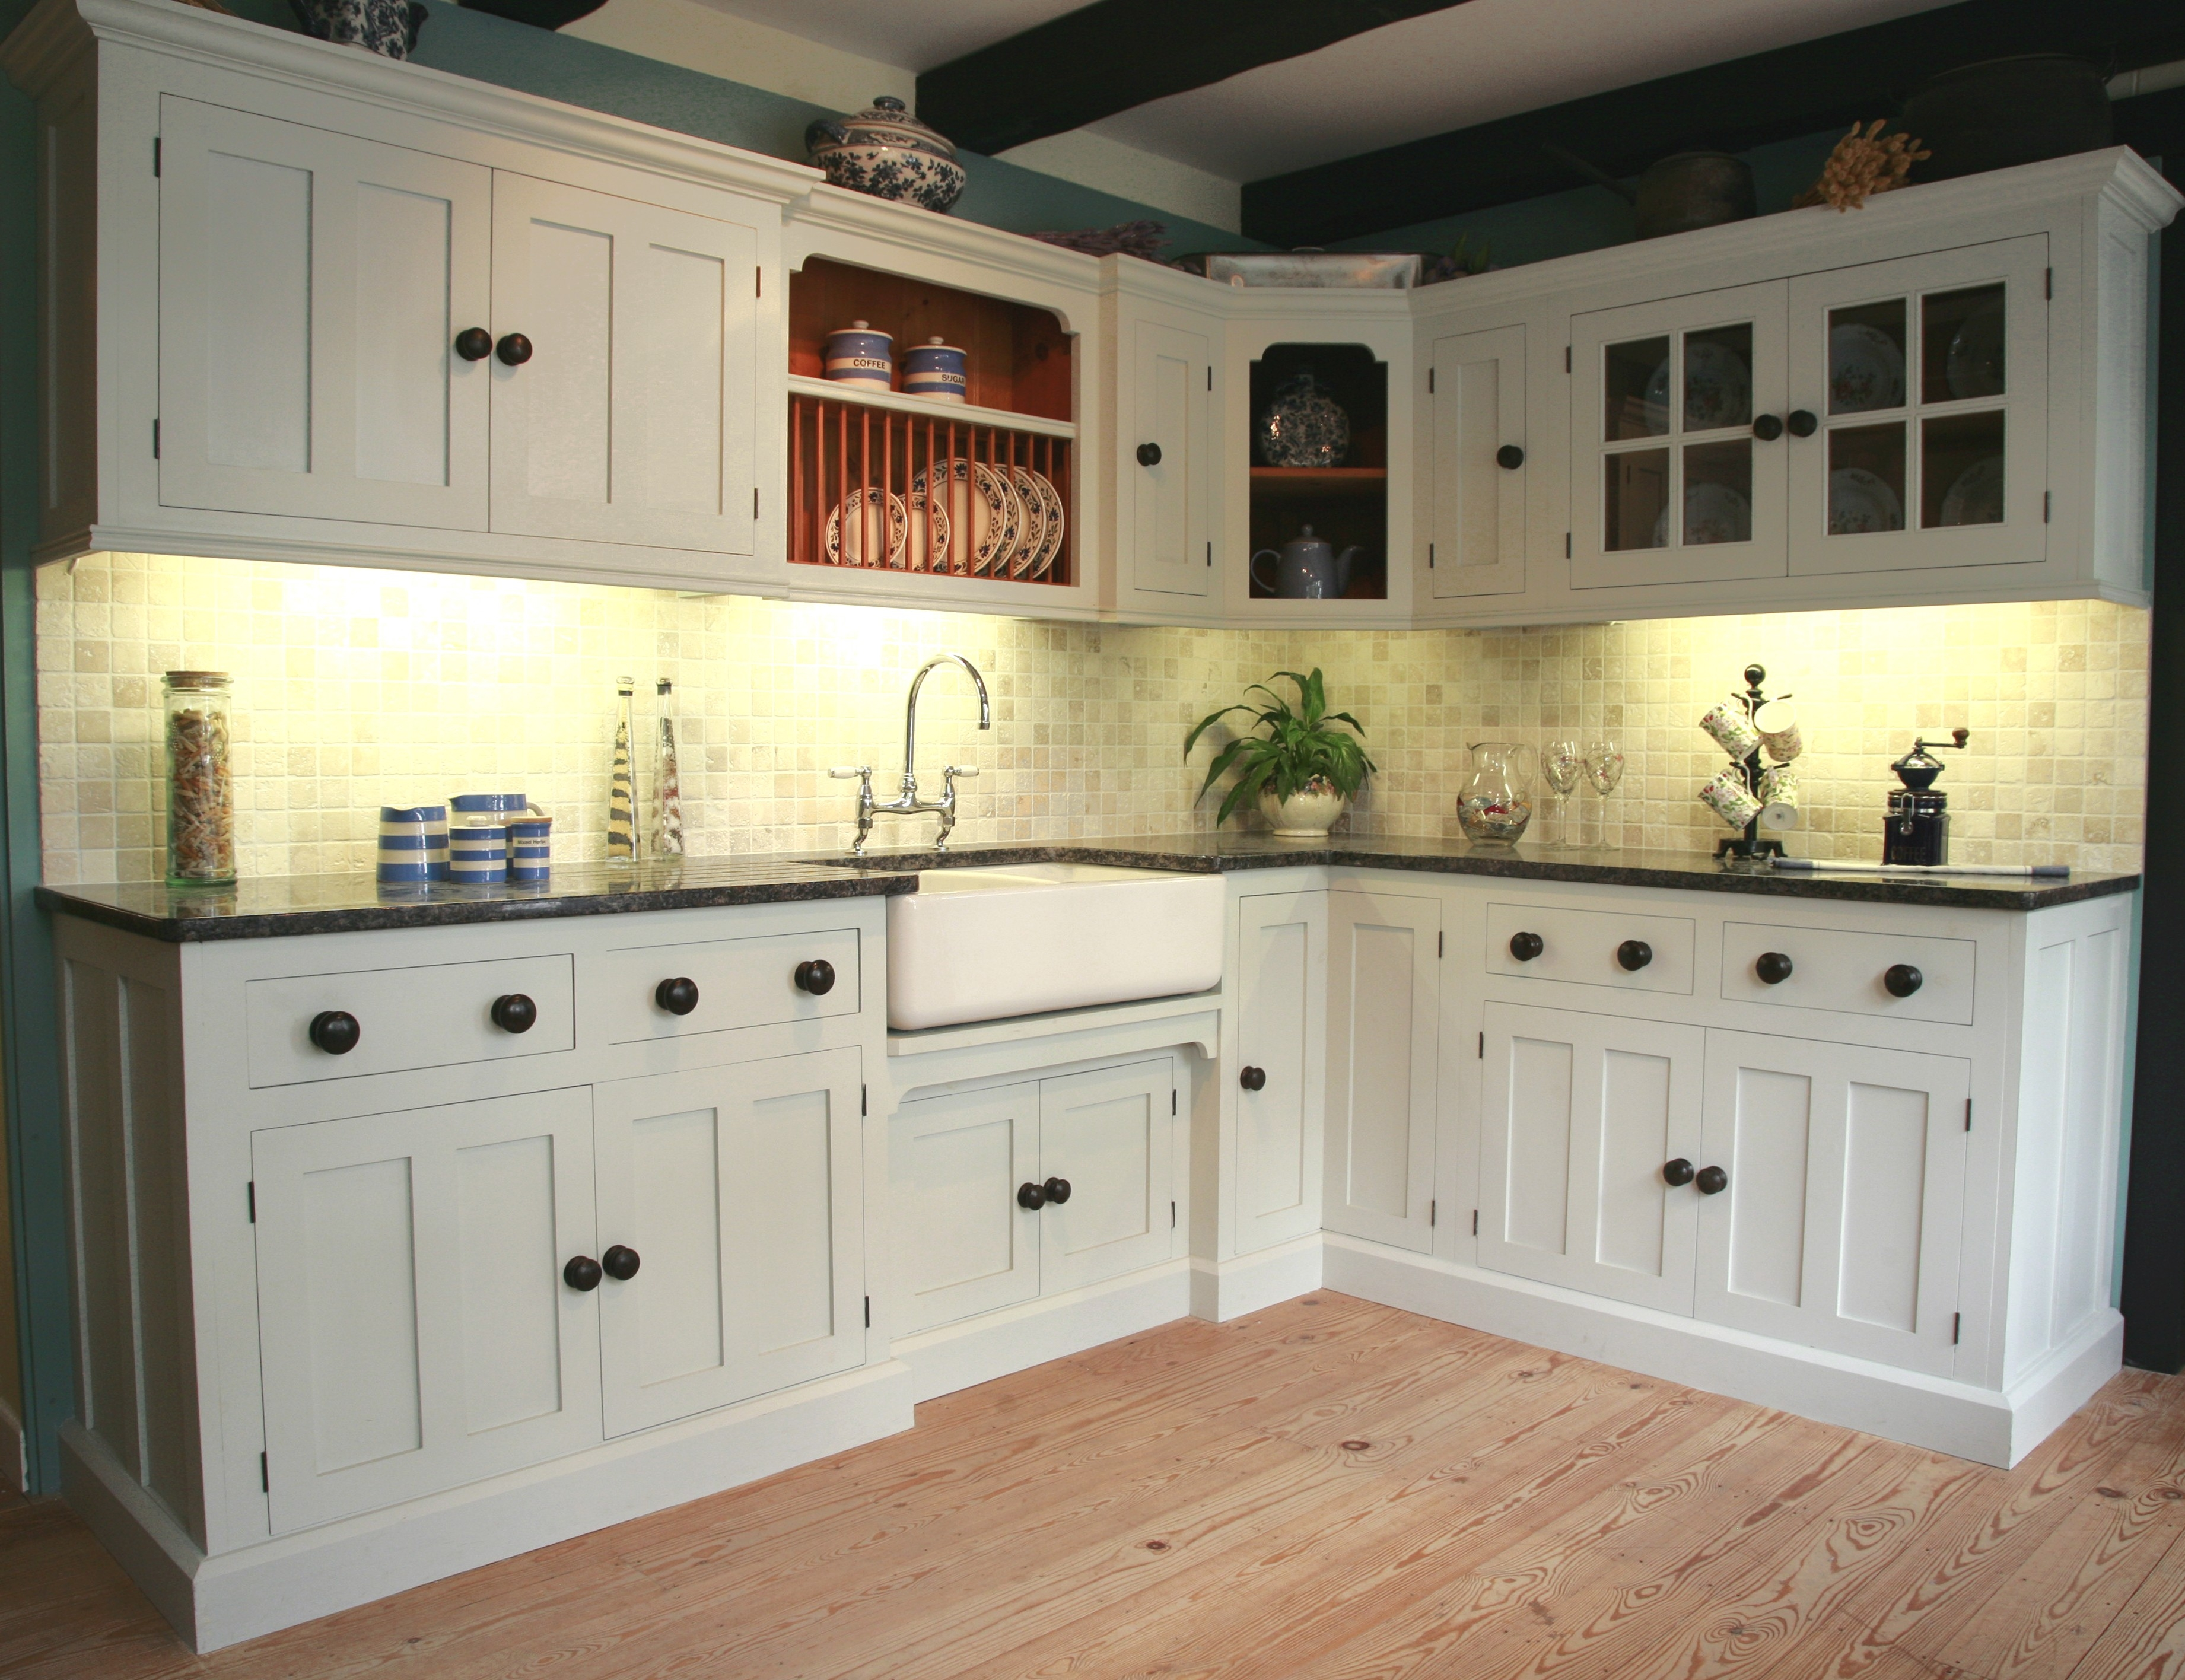 Cabinet Hardware For Country Kitchen